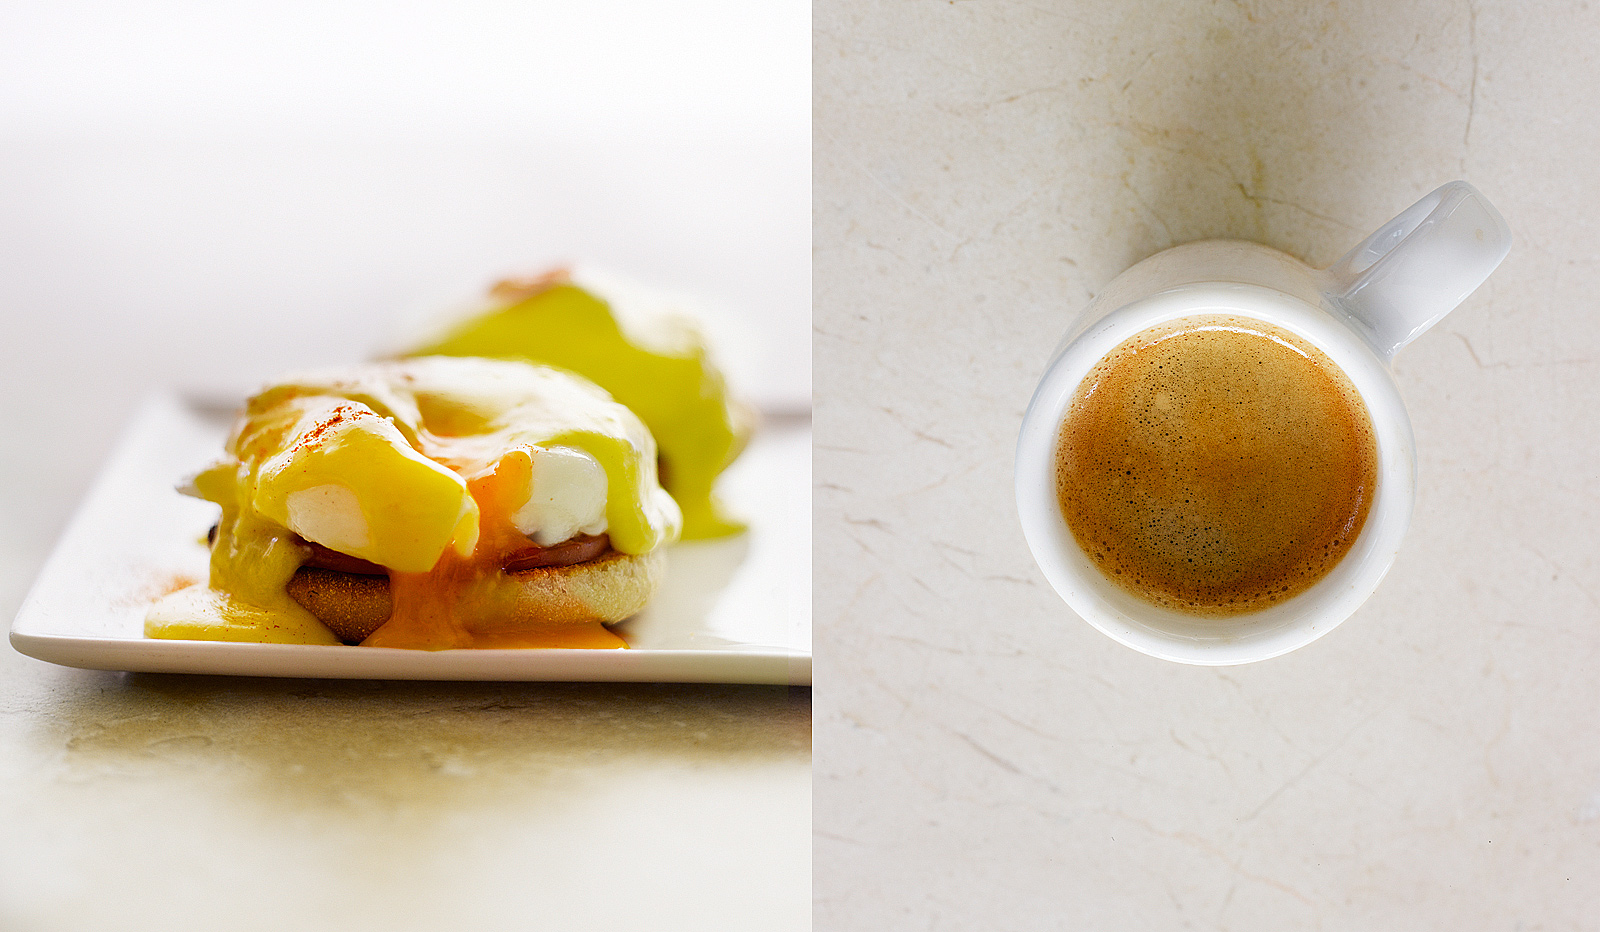 Eggs benedict- Expresso- Hollandaise sauce- Best food photography